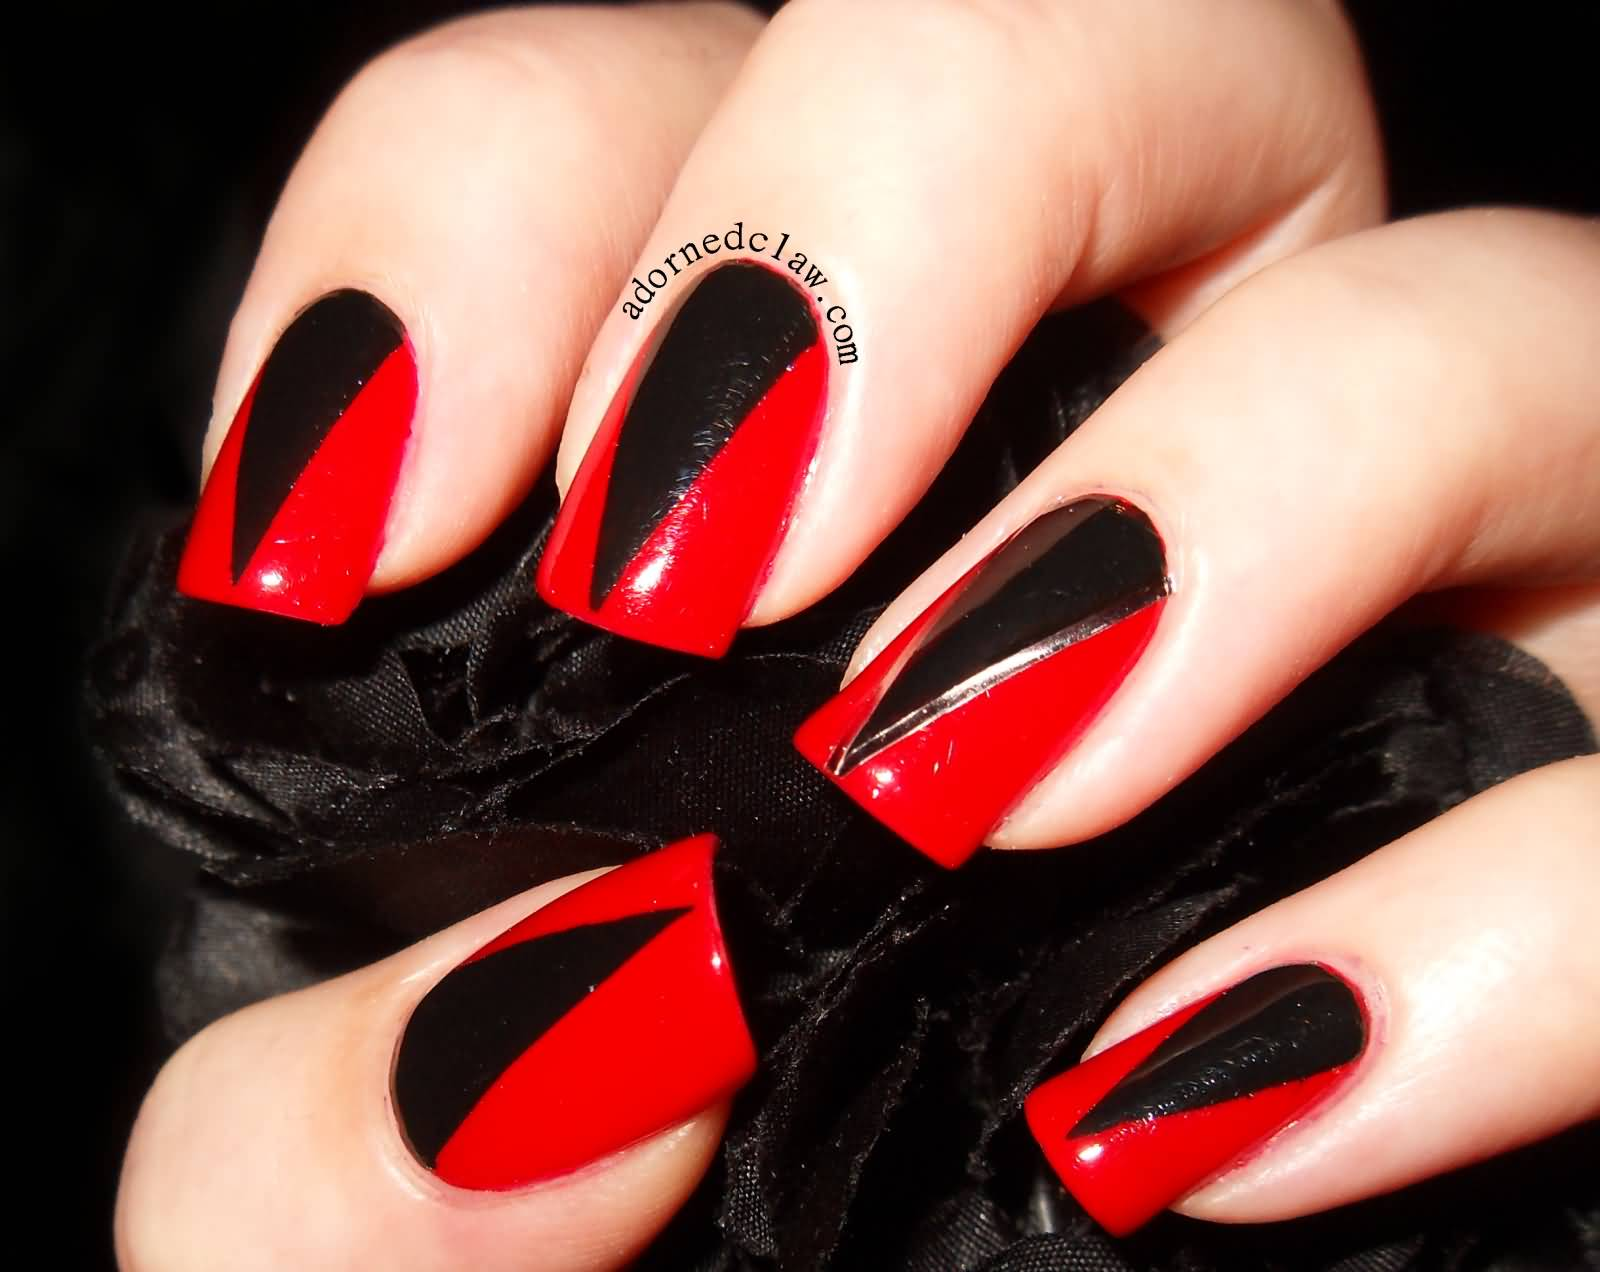 Awesome red and black nails with sharp v design on nail picsmine 1600 1272 in 50 tremendous red and black nails art prinsesfo Gallery